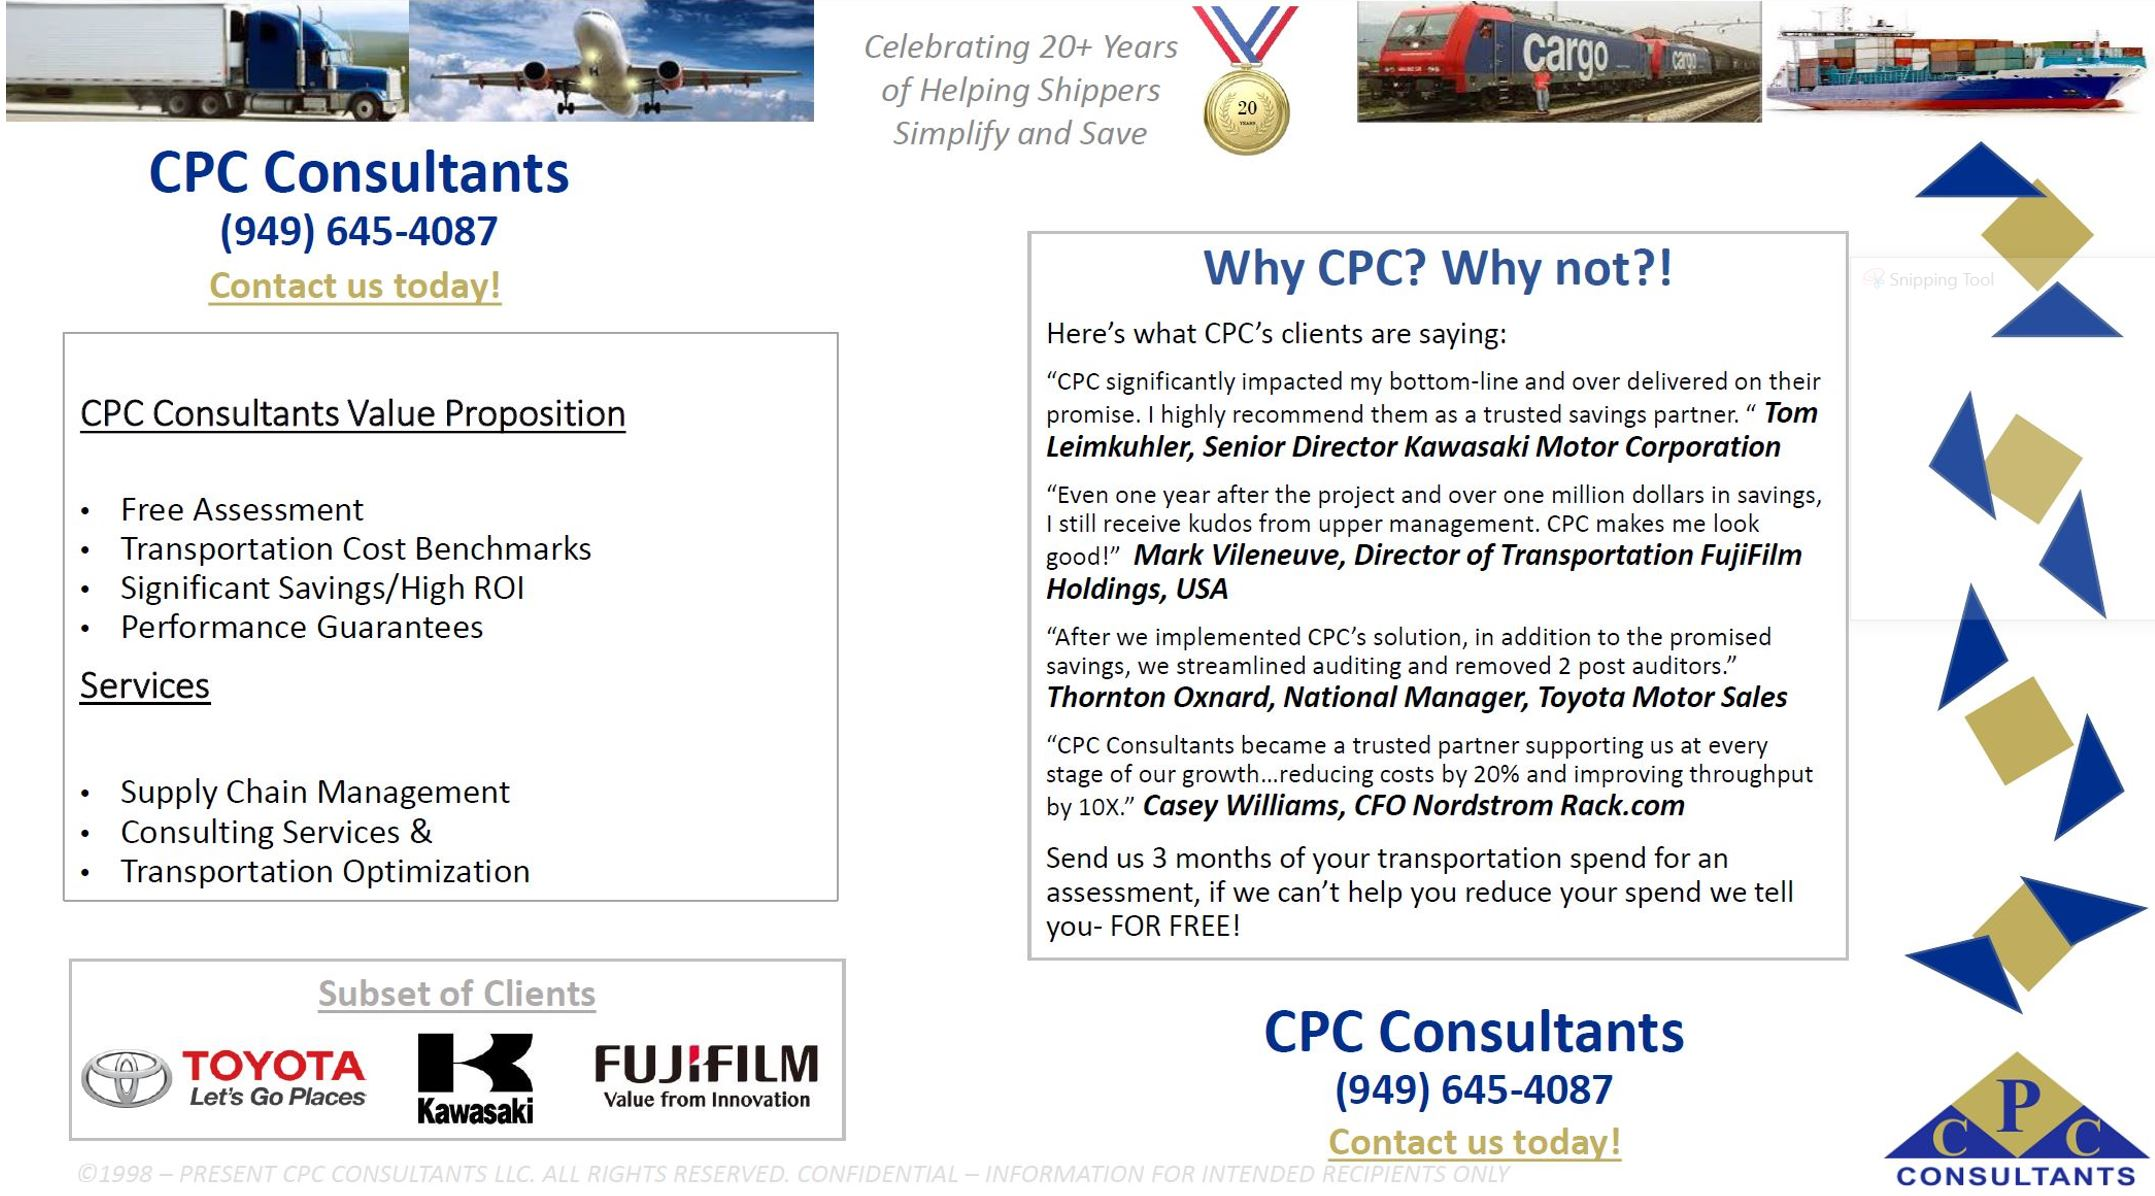 Client Testimonials - CPC Helping Shippers Simplify and Save